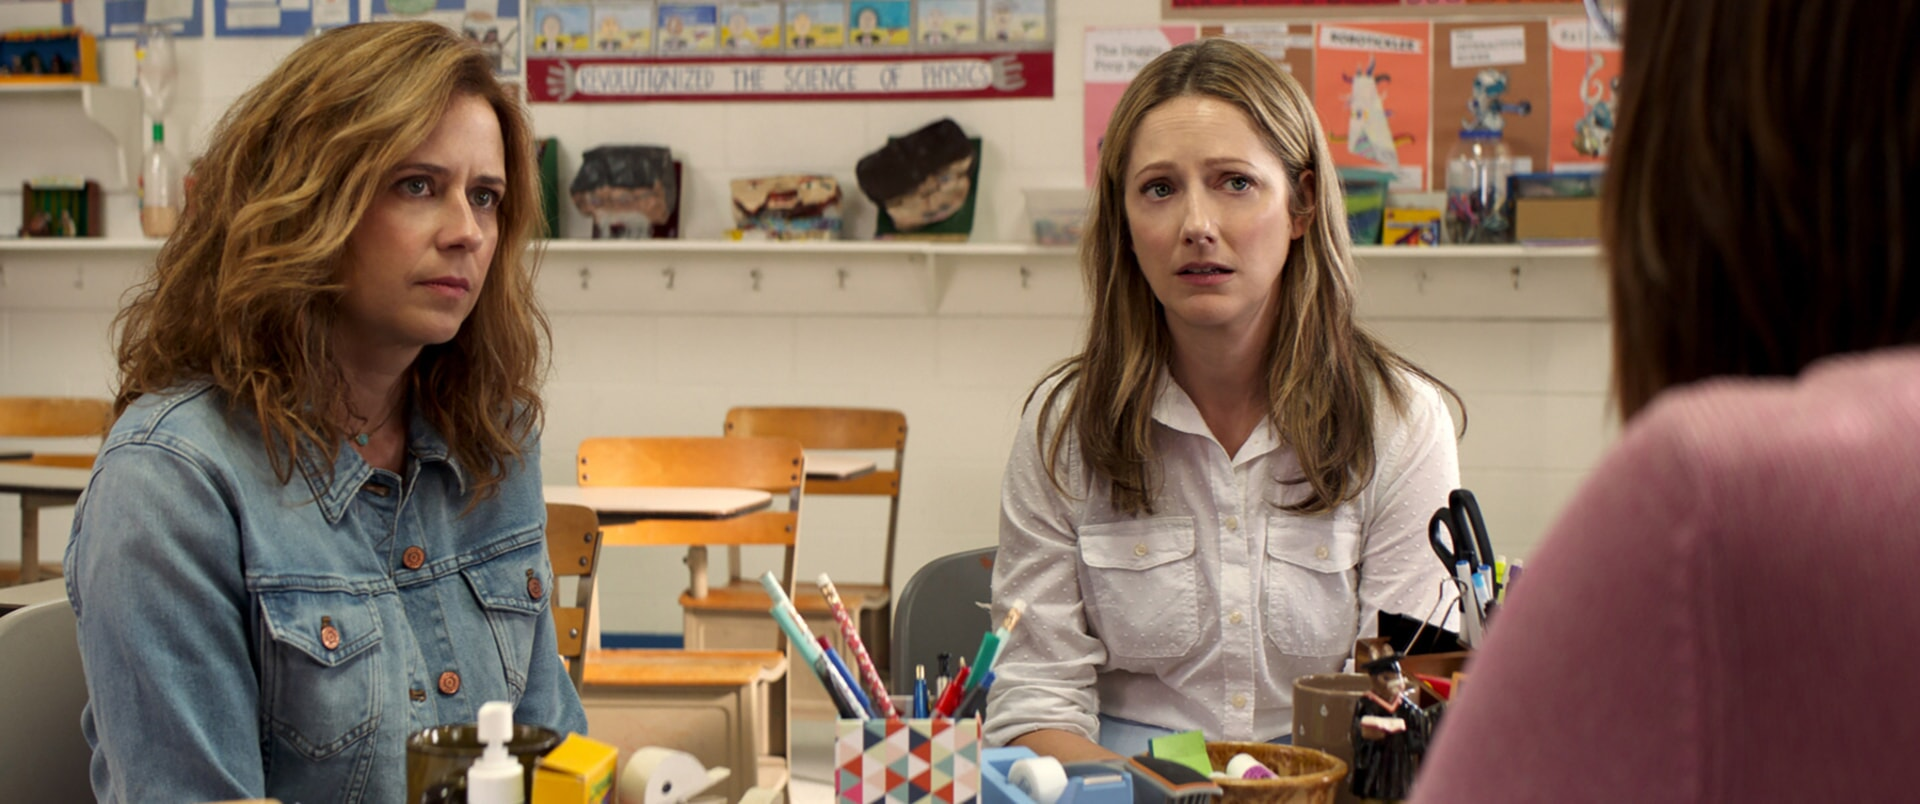 """JENNA FISCHER as Heidi and JUDY GREER as Joyce in Warner Bros. Pictures' and Village Roadshow Pictures' """"THE 15:17 TO PARIS,"""" a Warner Bros. Pictures release."""